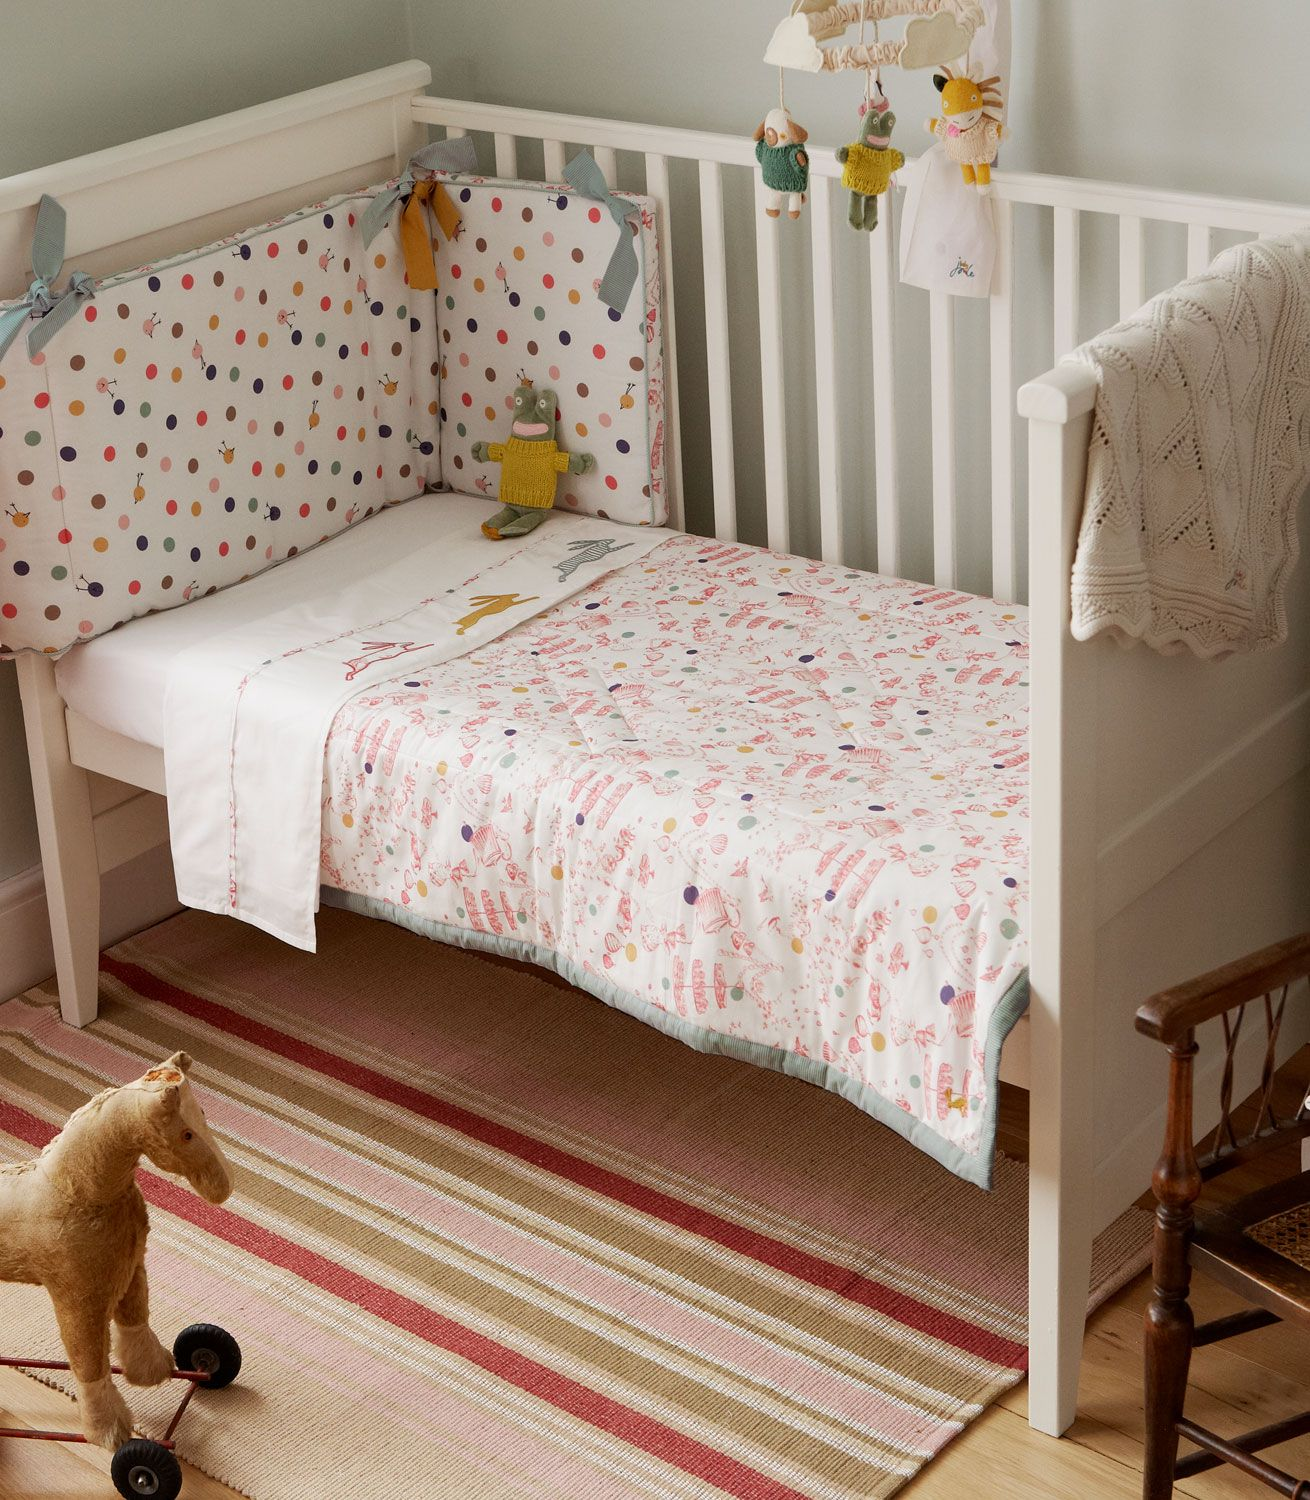 Quilt And Baby Bumper Sets Kiddicare Nursery Bedding Sets Childrens Curtains Girls Cot Bedding